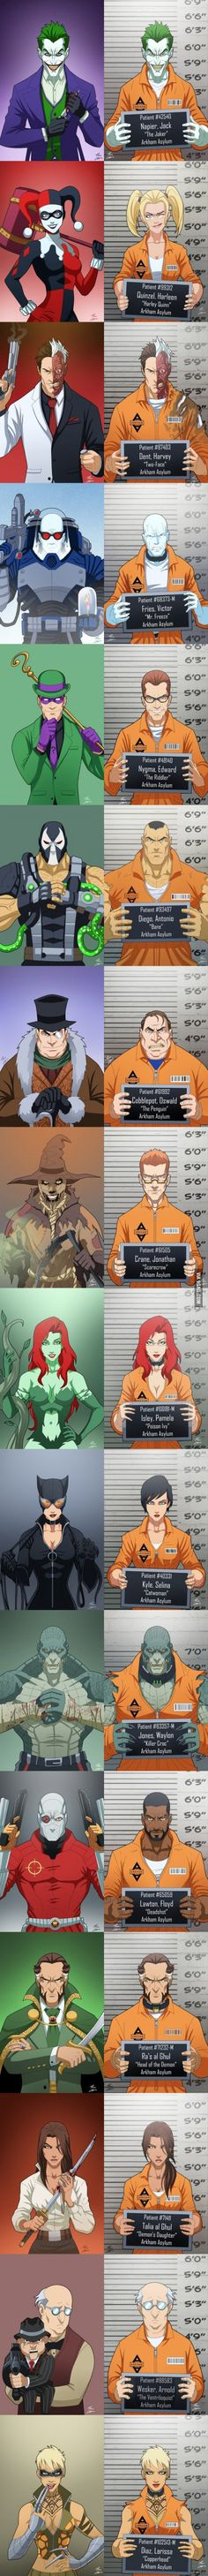 Batman's villains real names! For those who say jokers name was never revealed